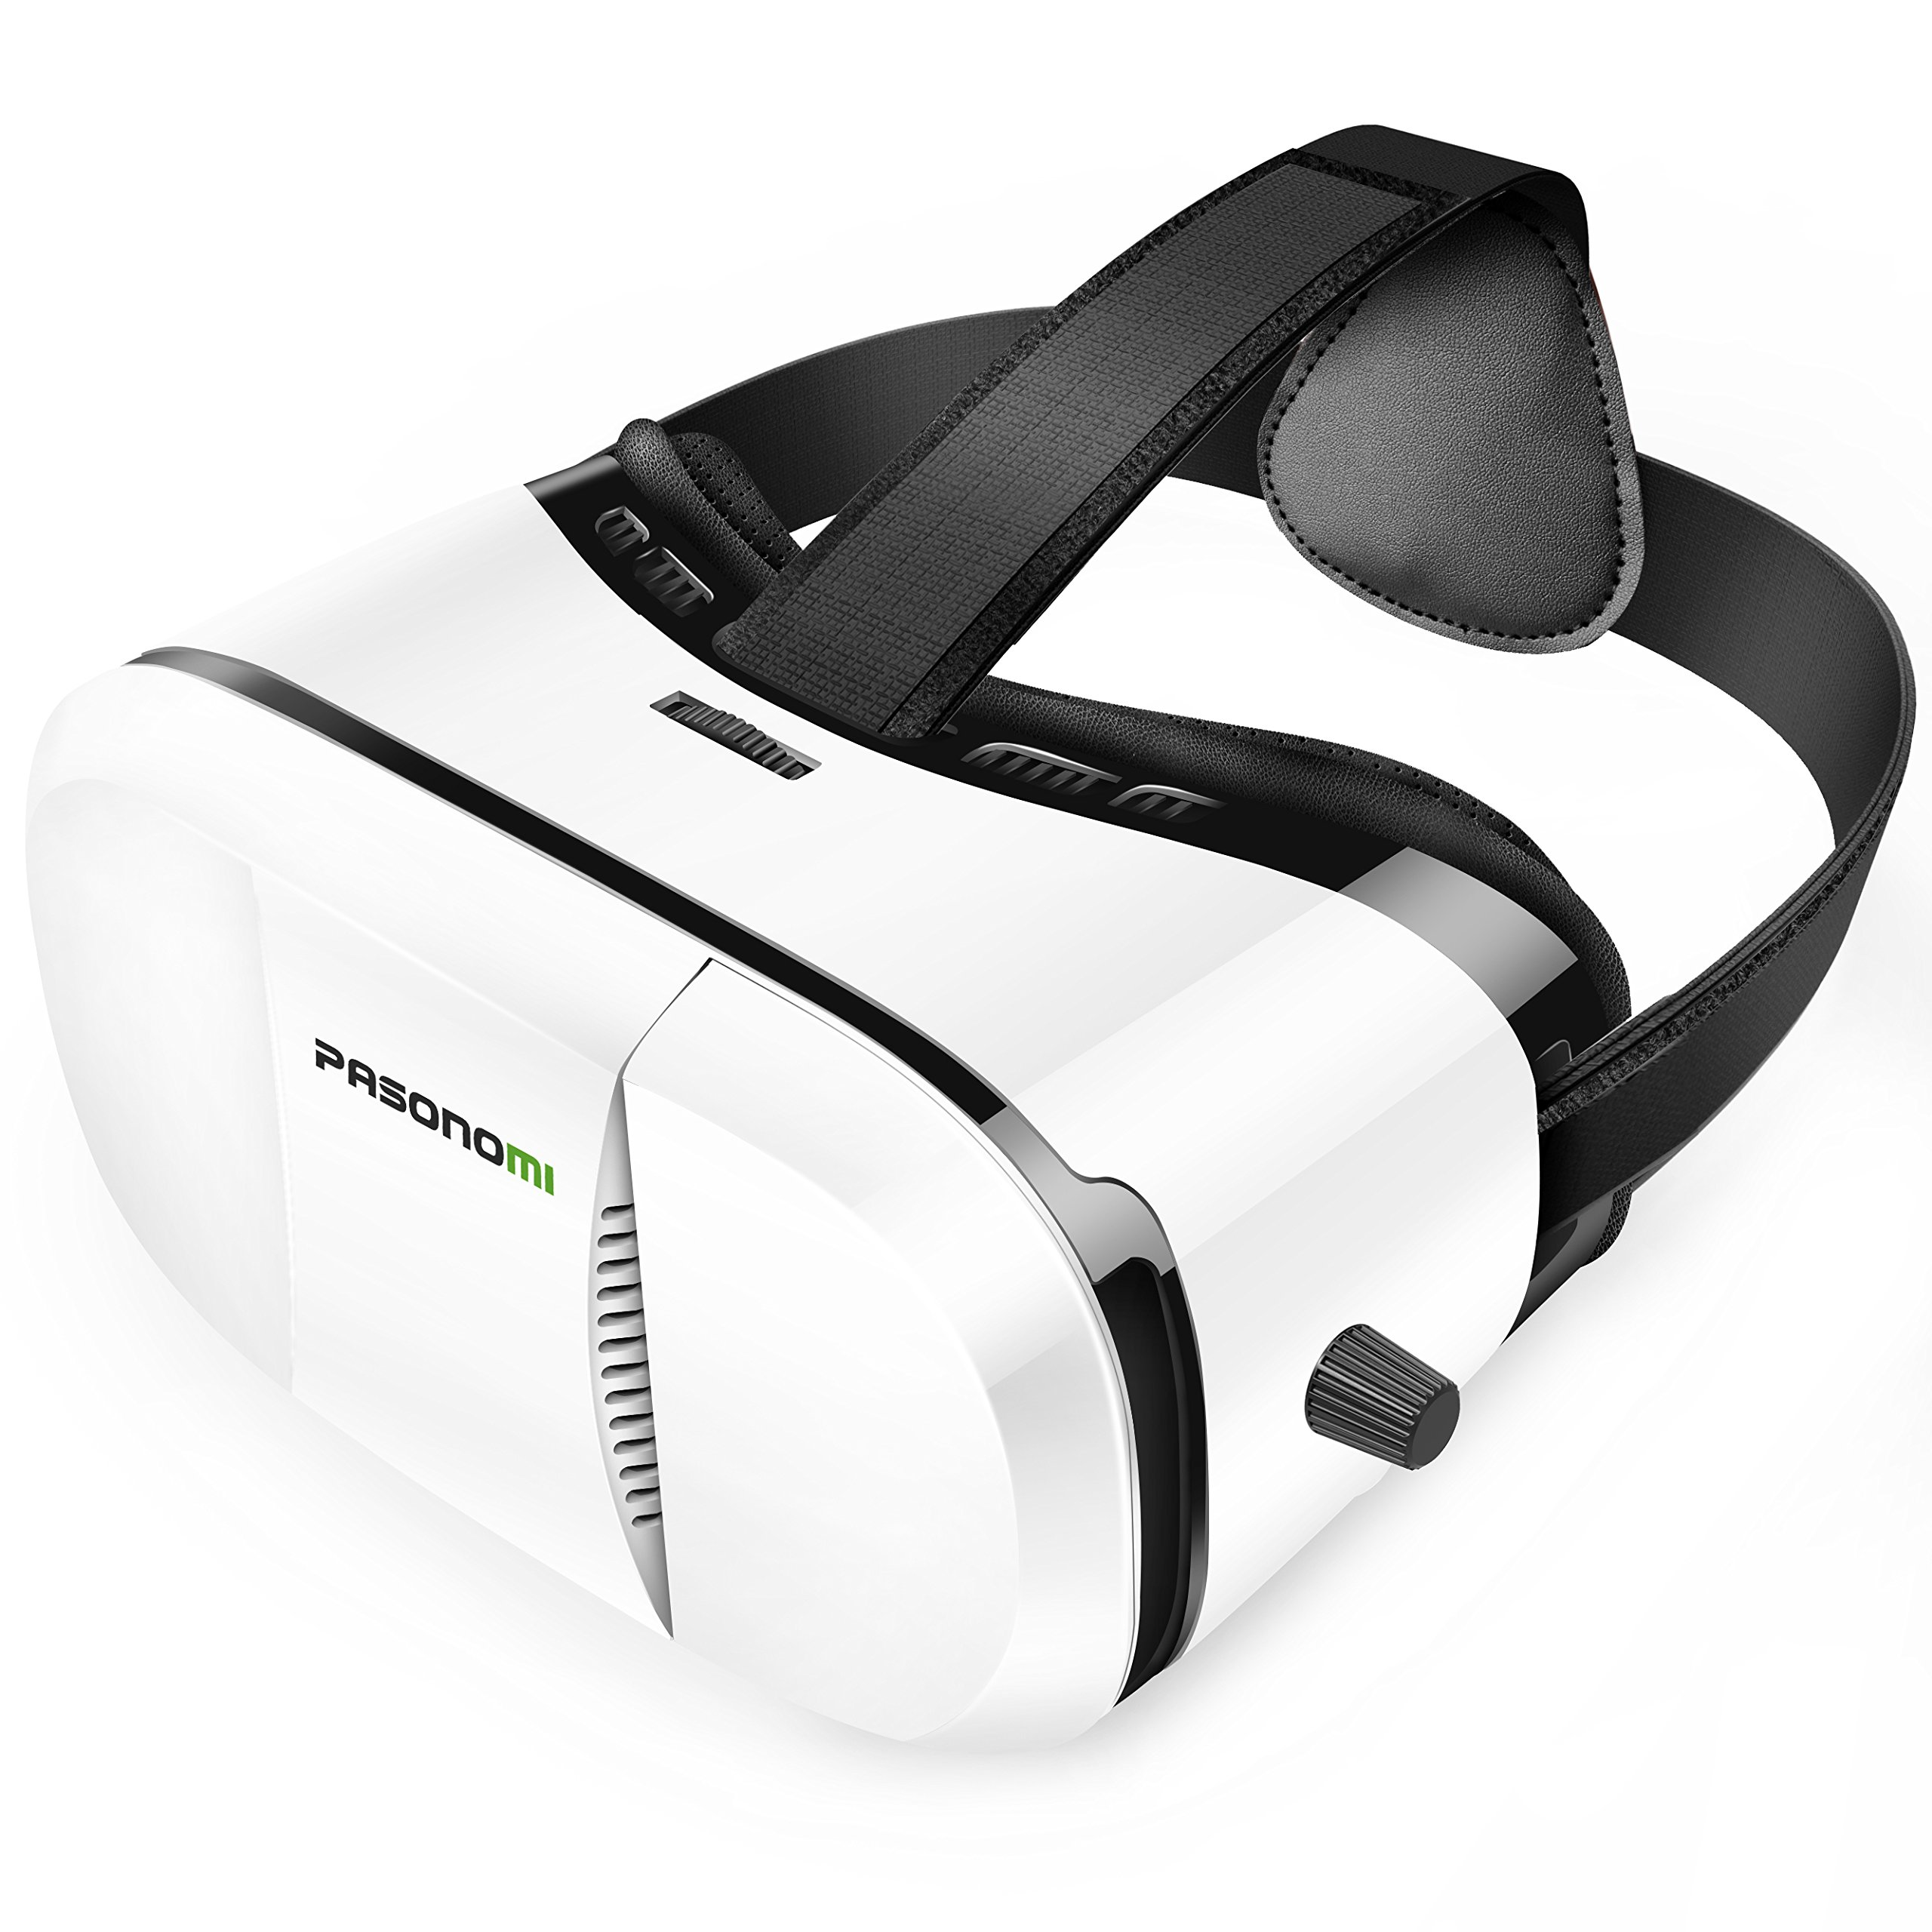 Pasonomi VR Glasses - 3D Virtual Reality Headset for iPhone 7/7 Plus/6s/6 plus/6/5, Samsung Galaxy, Huawei, Google, Moto & all Android Smartphone